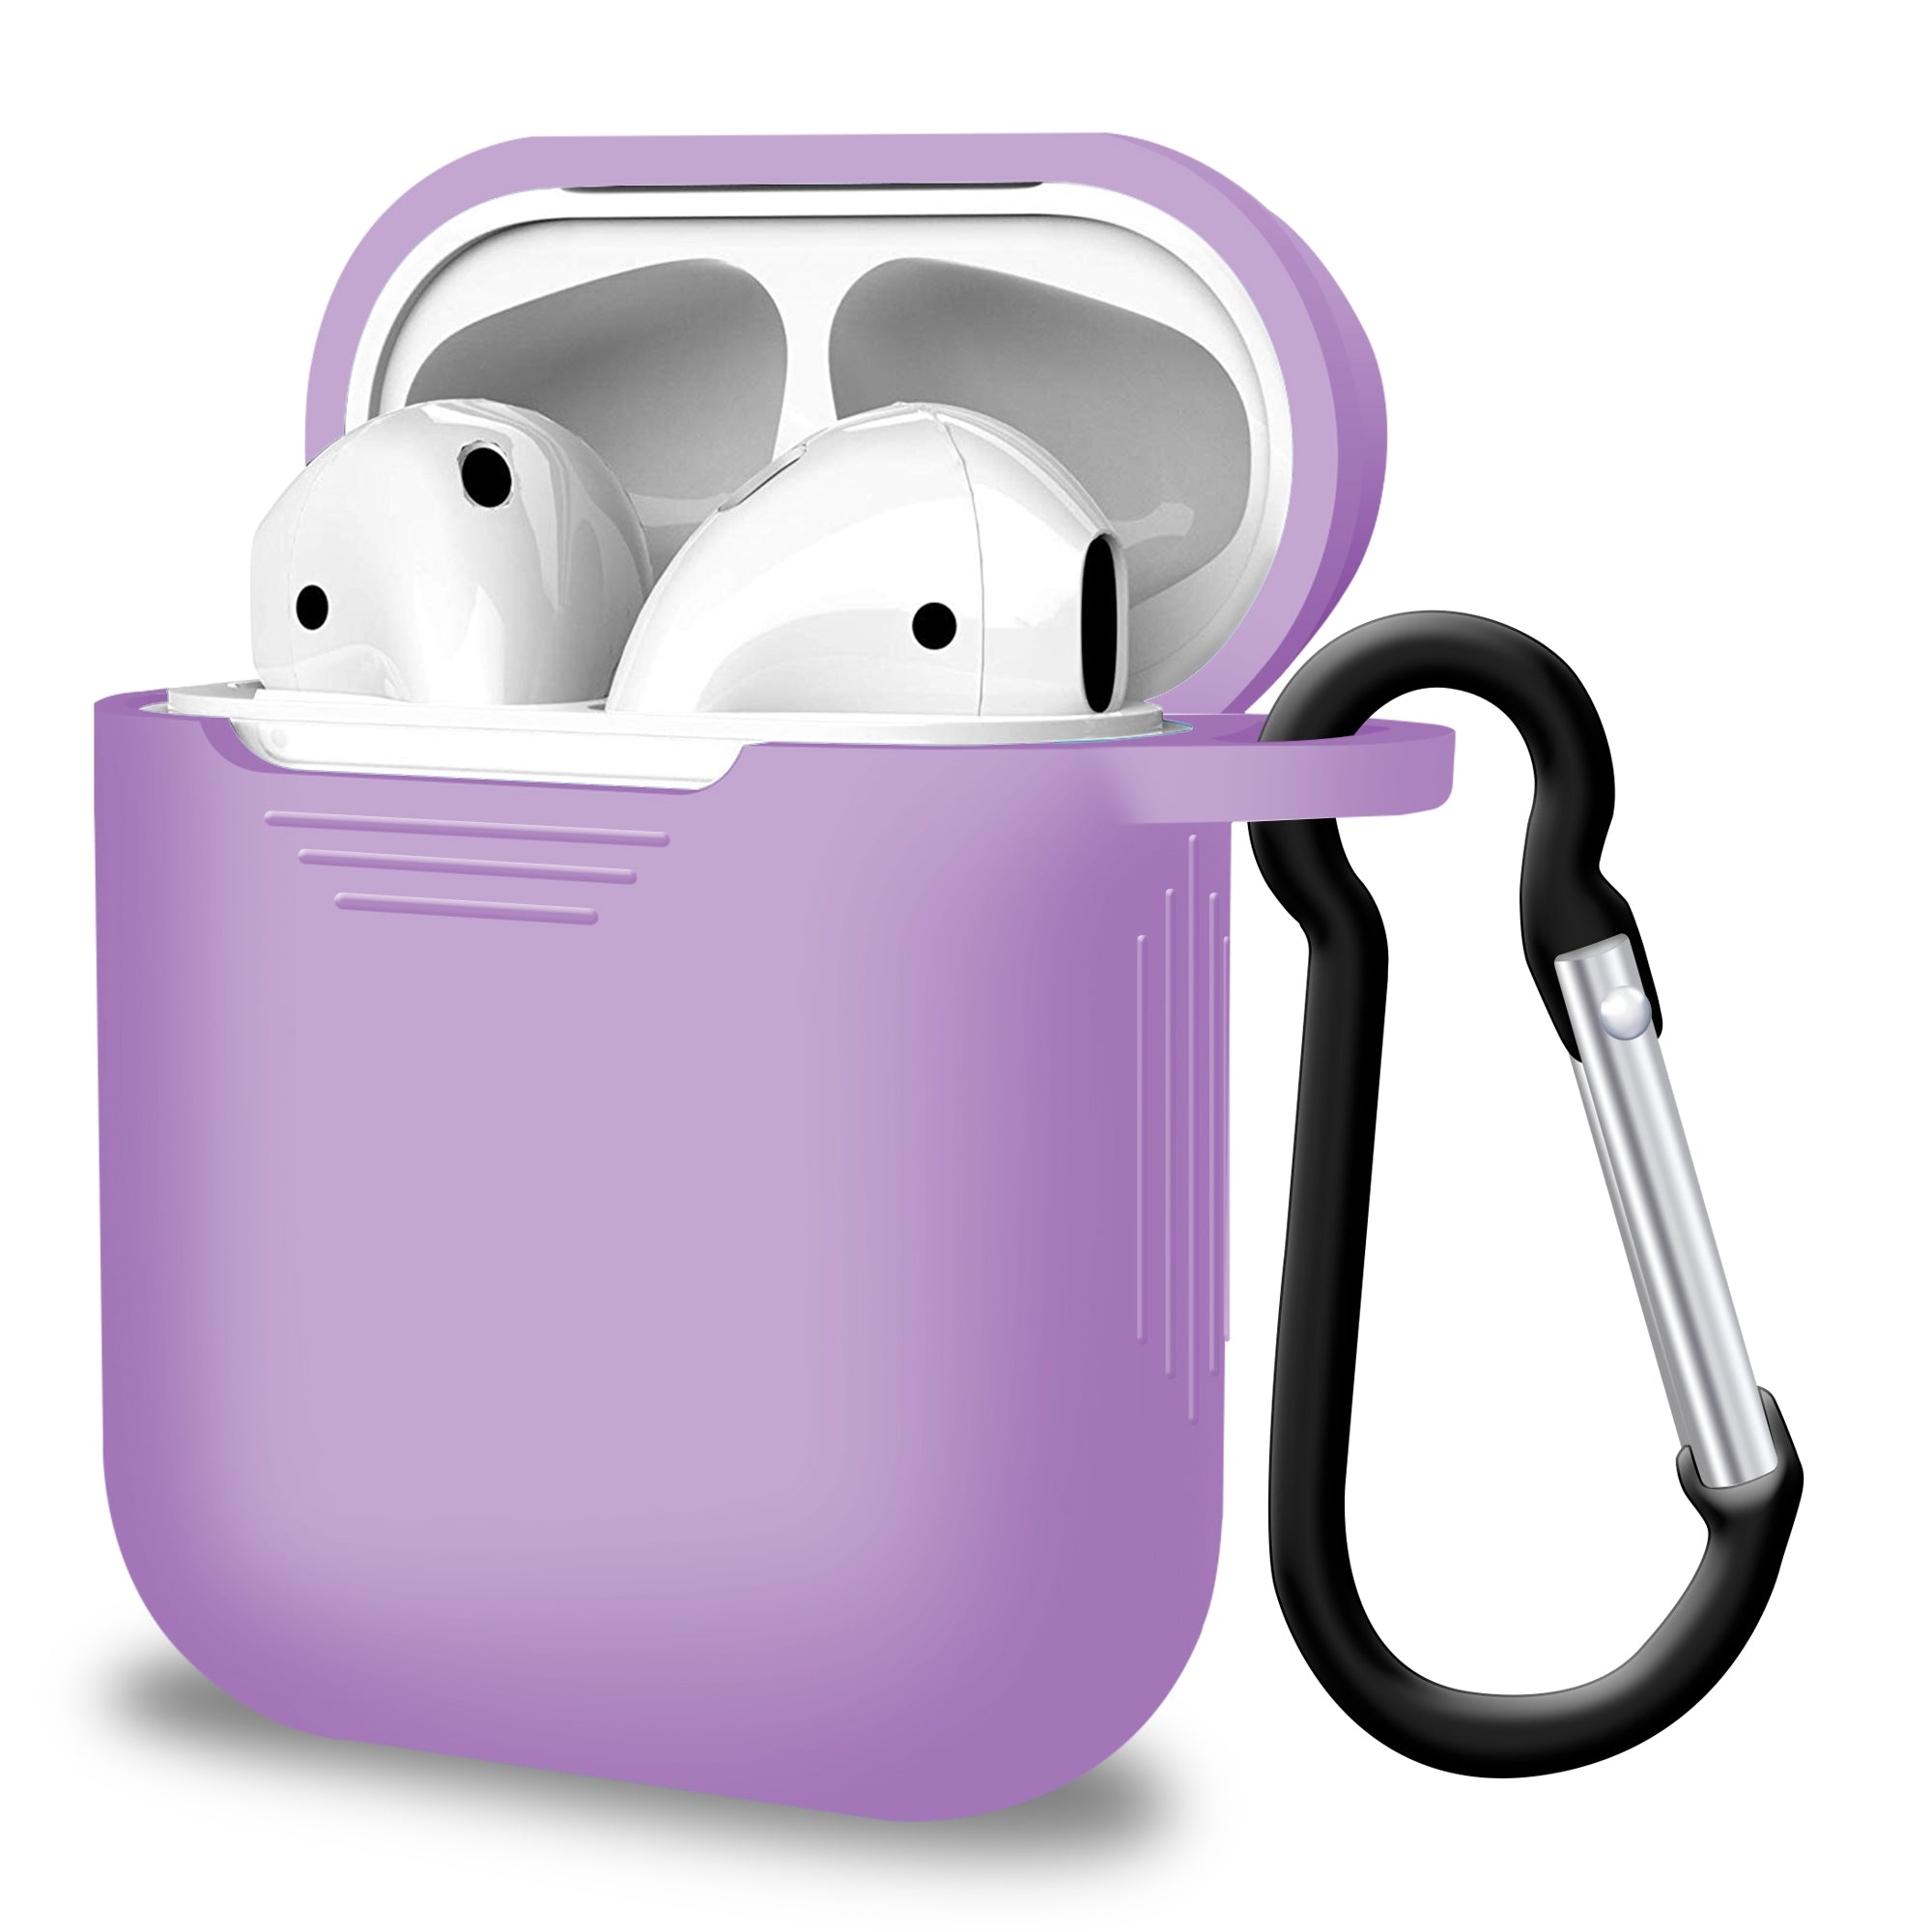 2 in 1 Apple Airpods Silicone Case Earphone Charge Skin Cover Slight Purple, Audio Accessories by TradeNRG